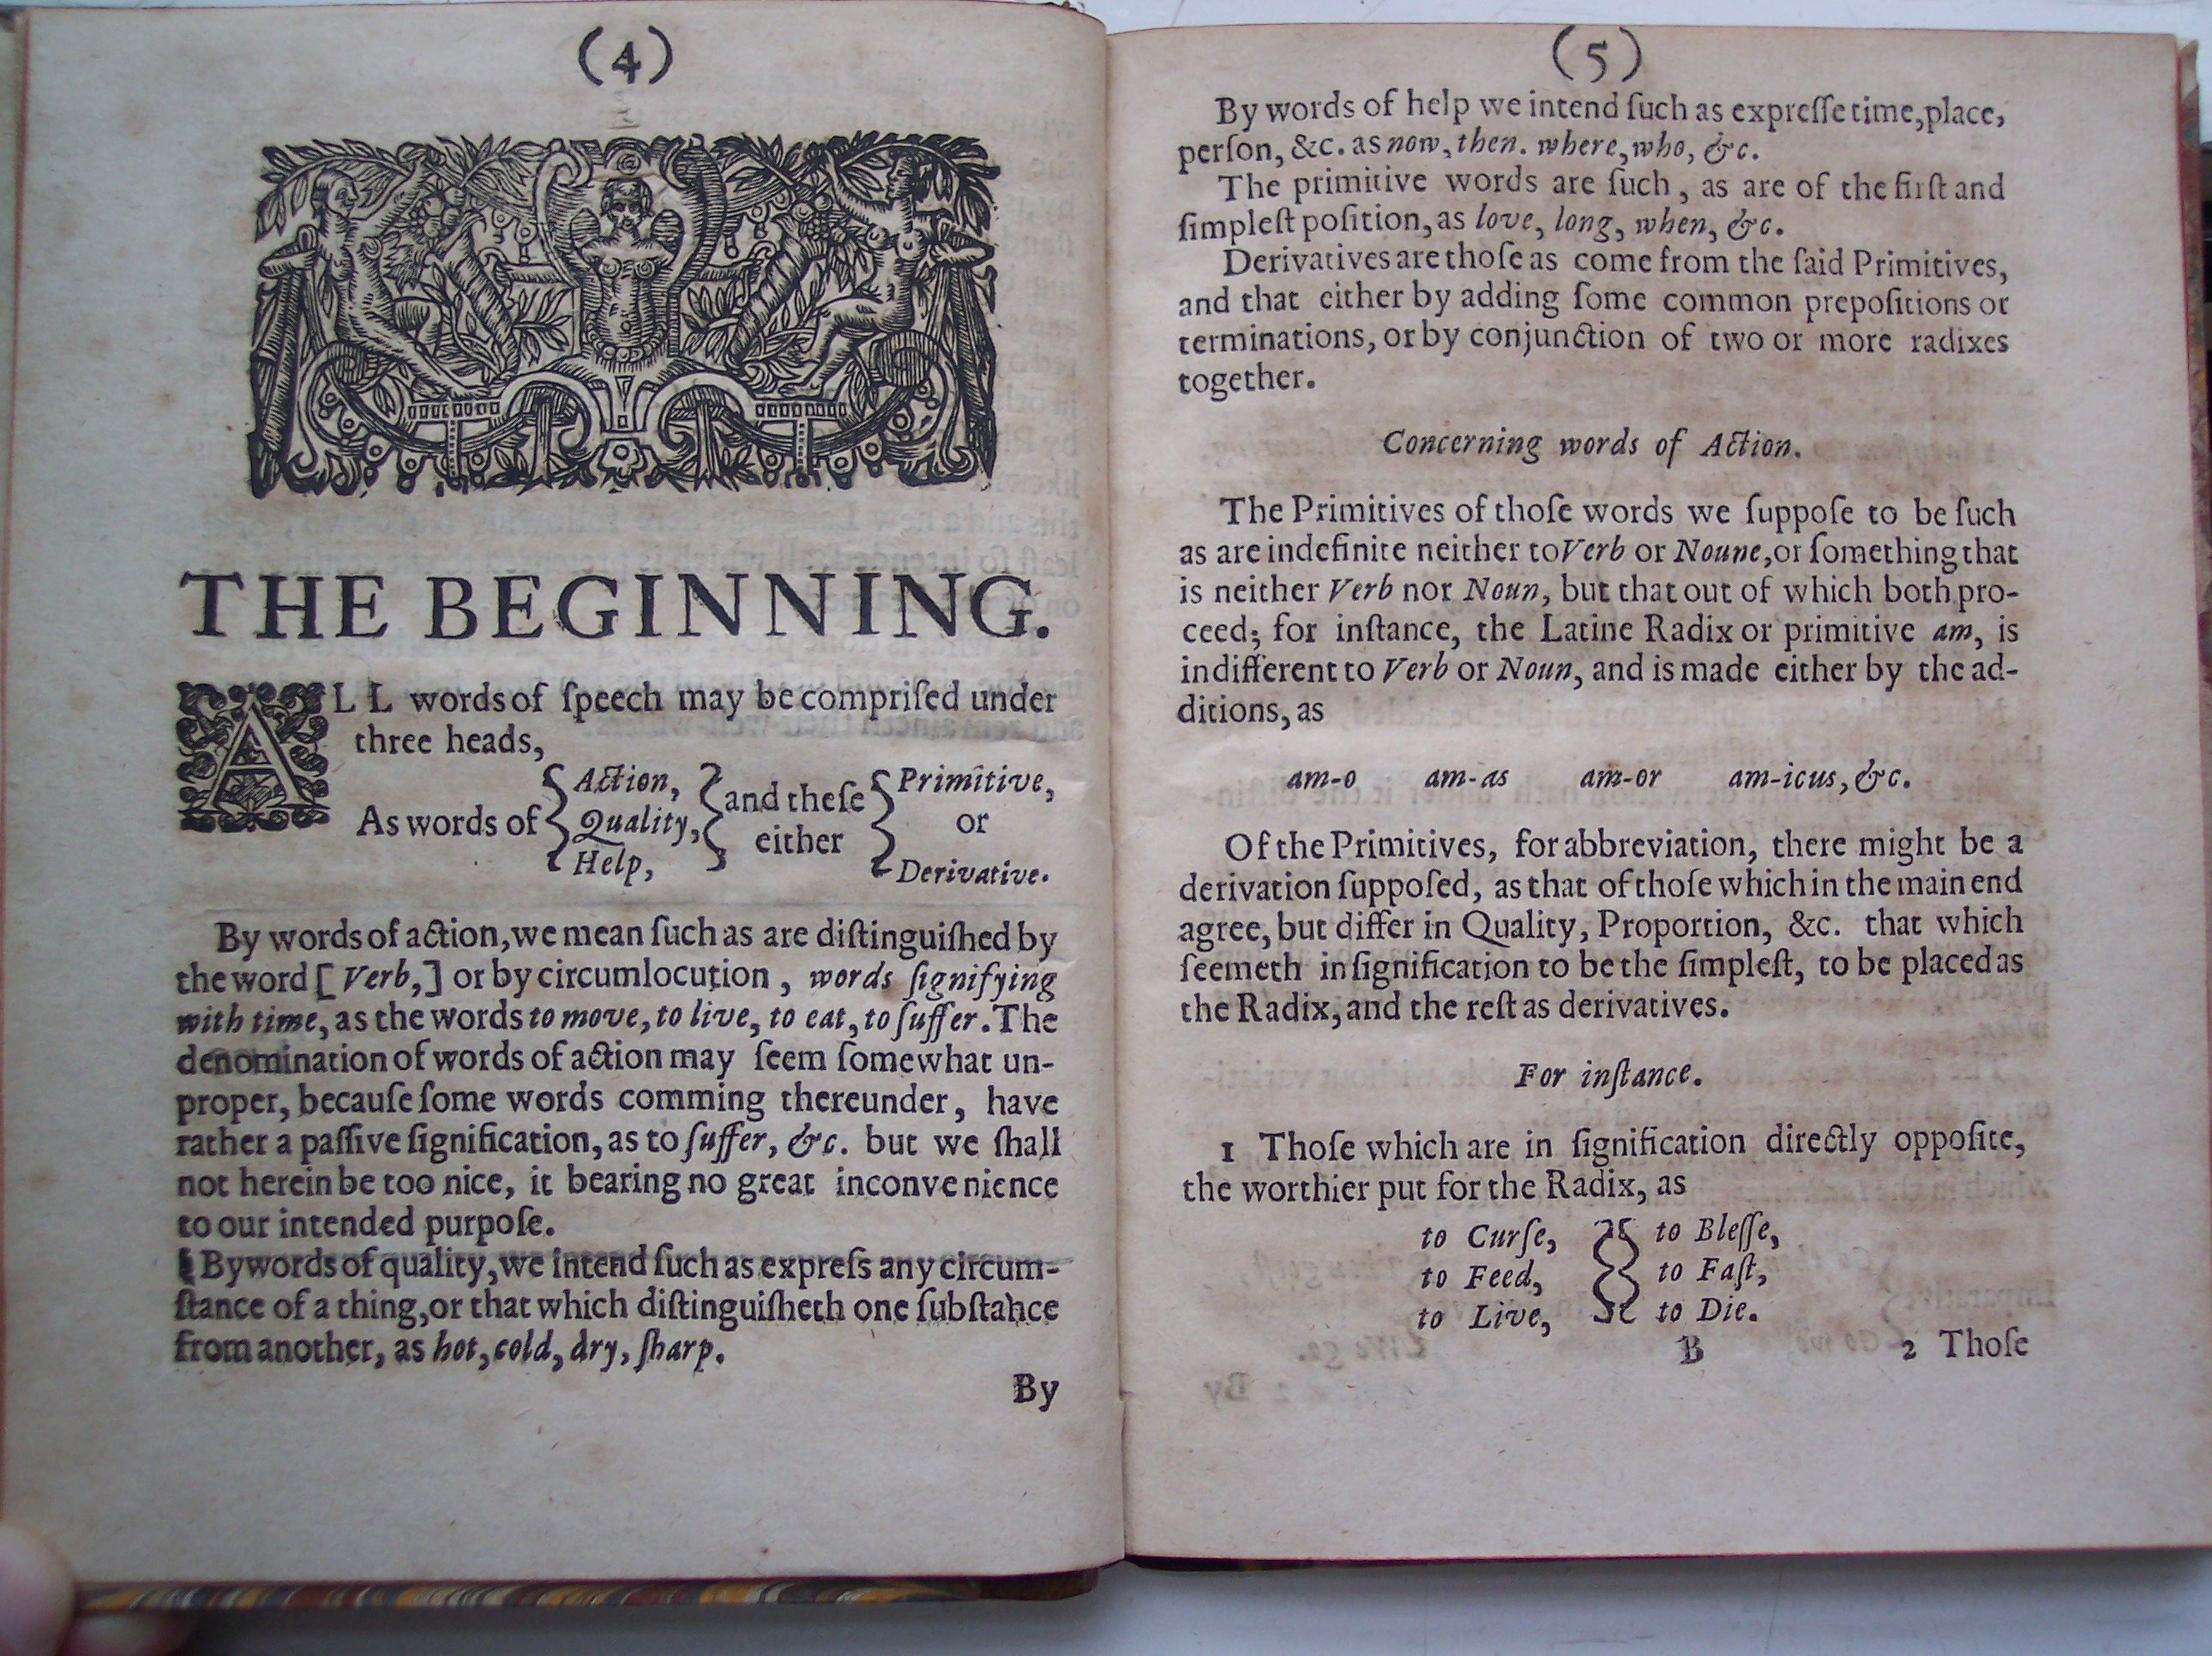 BT3.206.24(1), p.4-5, Francis Lodwick's The ground-work, or foundation laid, (or so intended) for the framing of a new perfect language, 1652